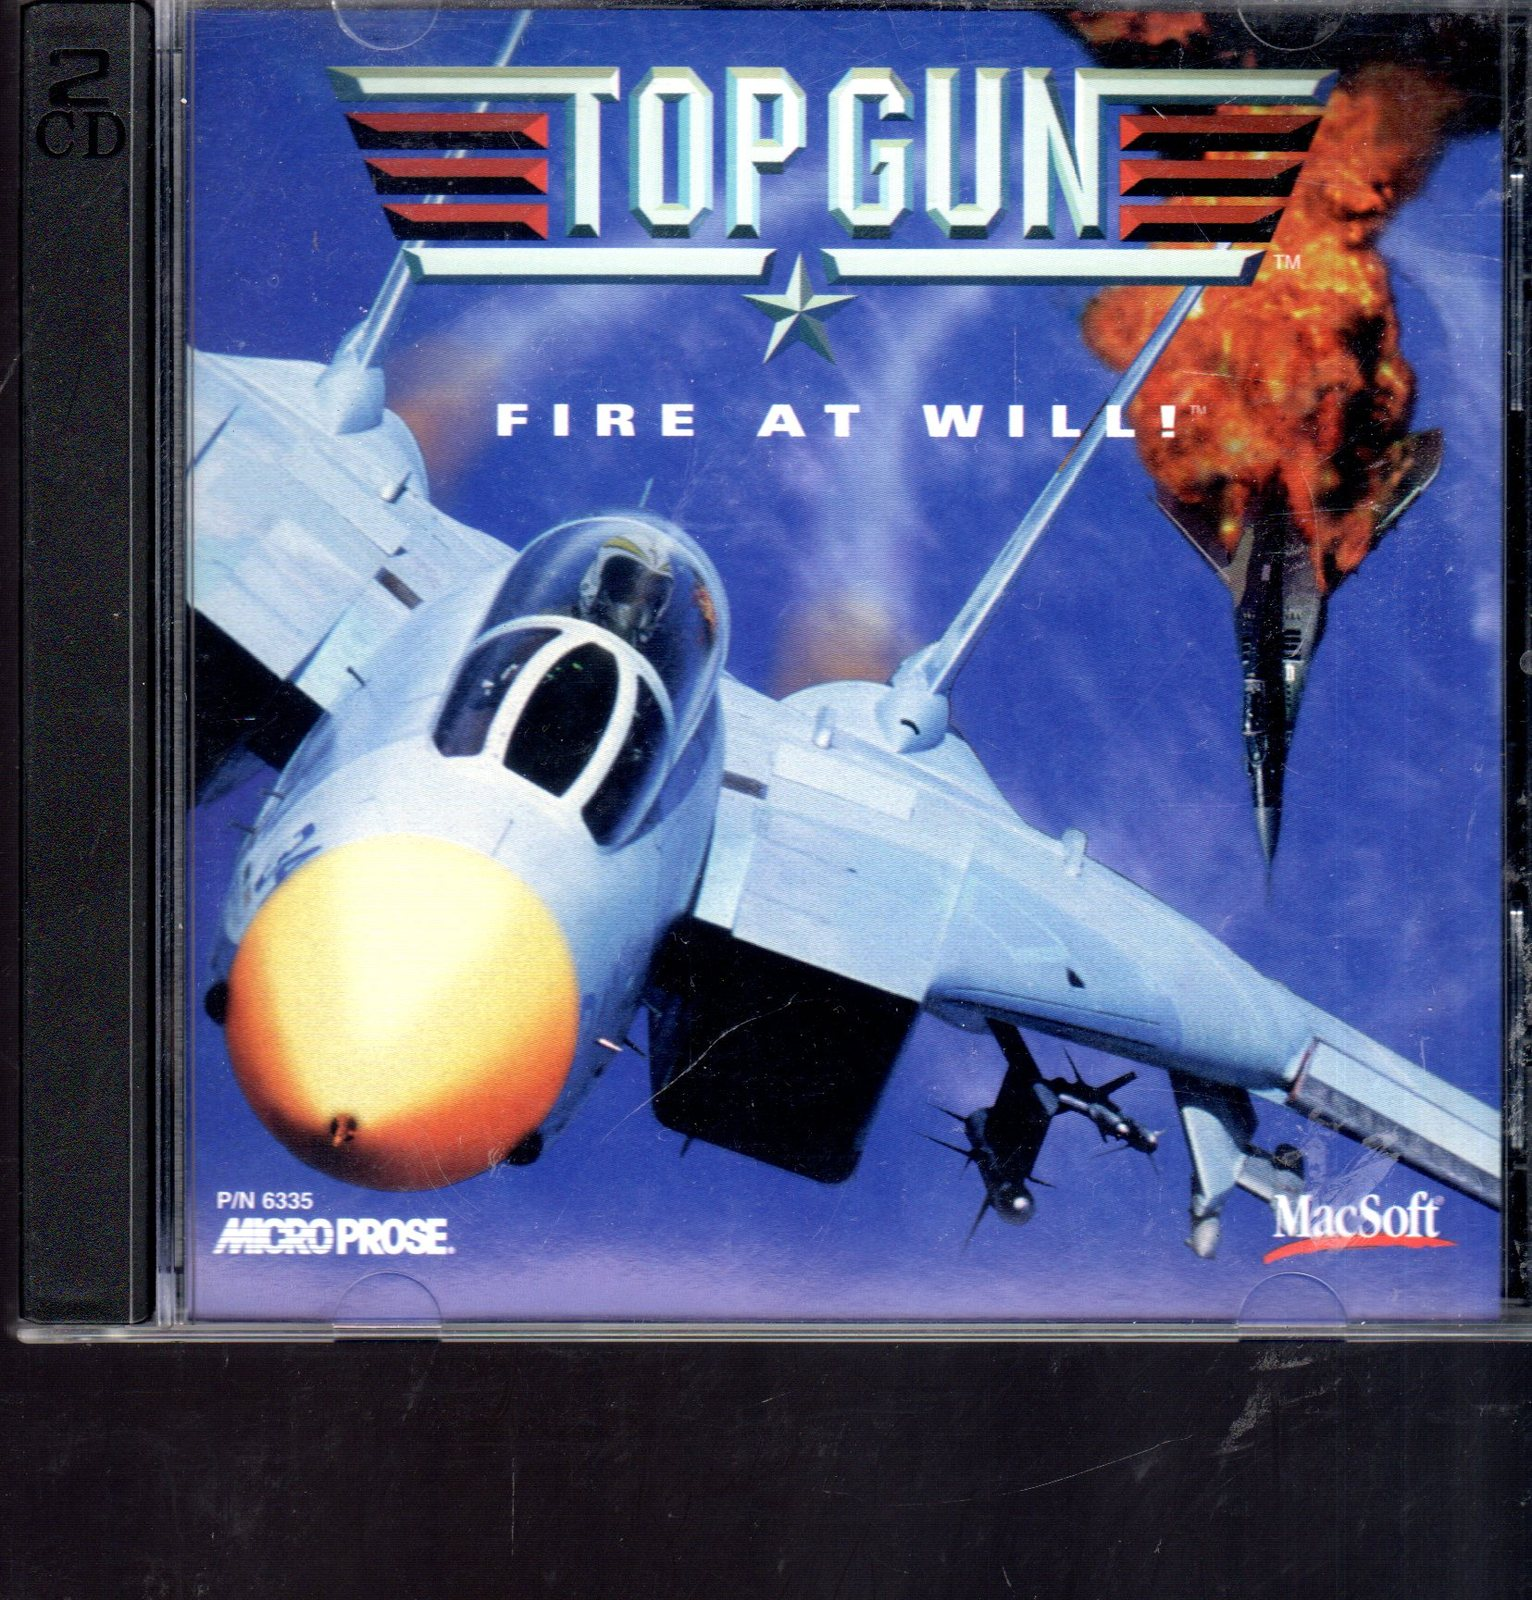 Top Gun - Fire At Will! - PC Windows Game